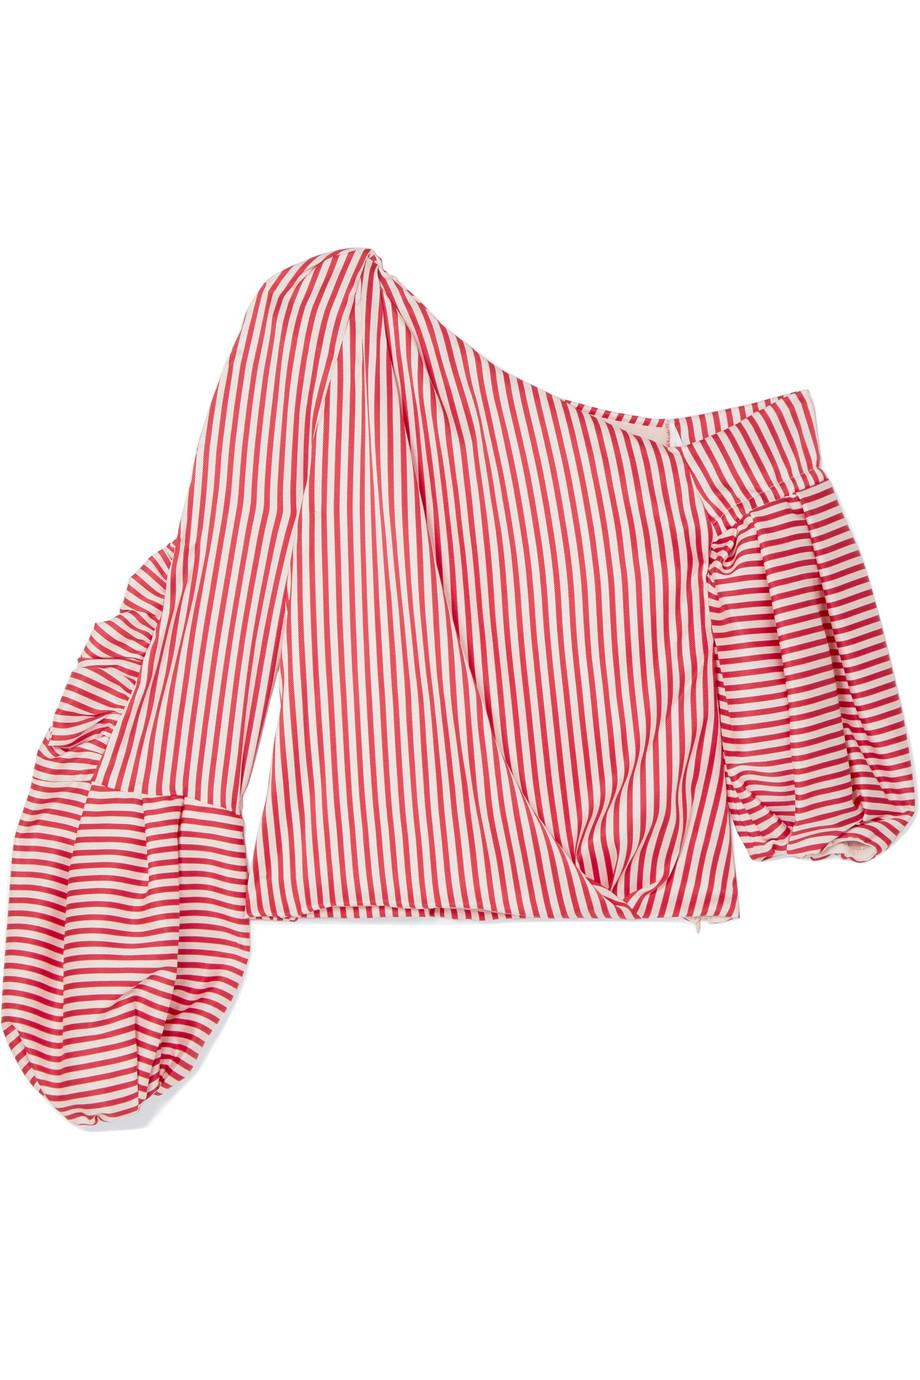 Hilda One-shoulder Striped Silk-blend Twill Top - Red Hellessy Sale Best Seller Really Cheap Online Cheap Official Site s9ldf